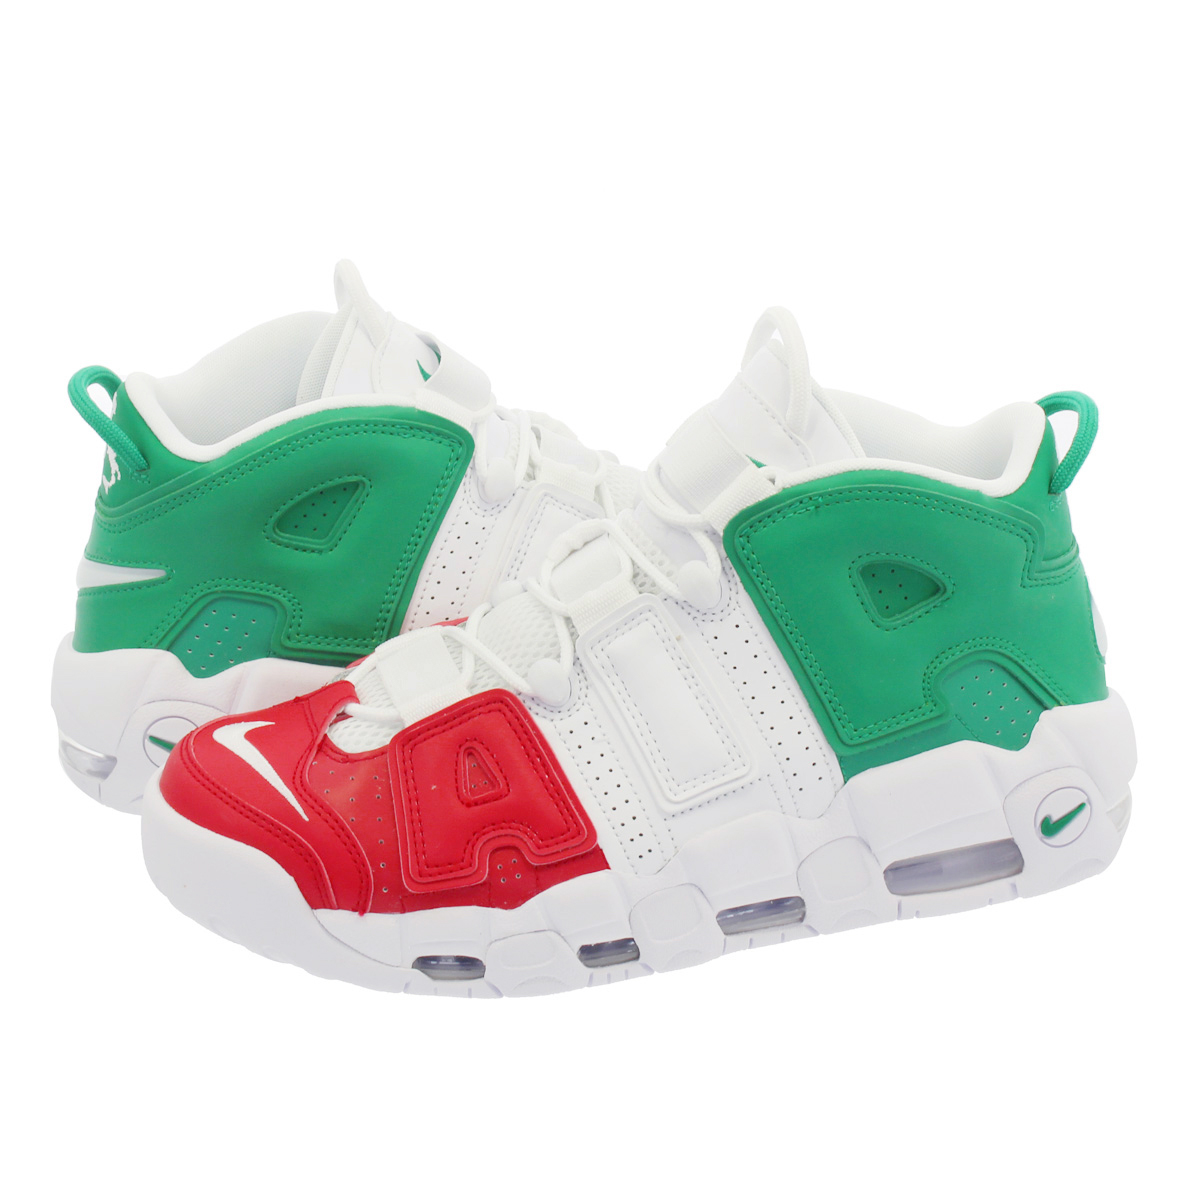 SELECT SHOP LOWTEX  NIKE AIR MORE UPTEMPO 96 ITALY QS Nike more up tempo 96  Italian QS UNIVERSITY RED WHITE LUCID GREEN av3811-600  930c1d9e3